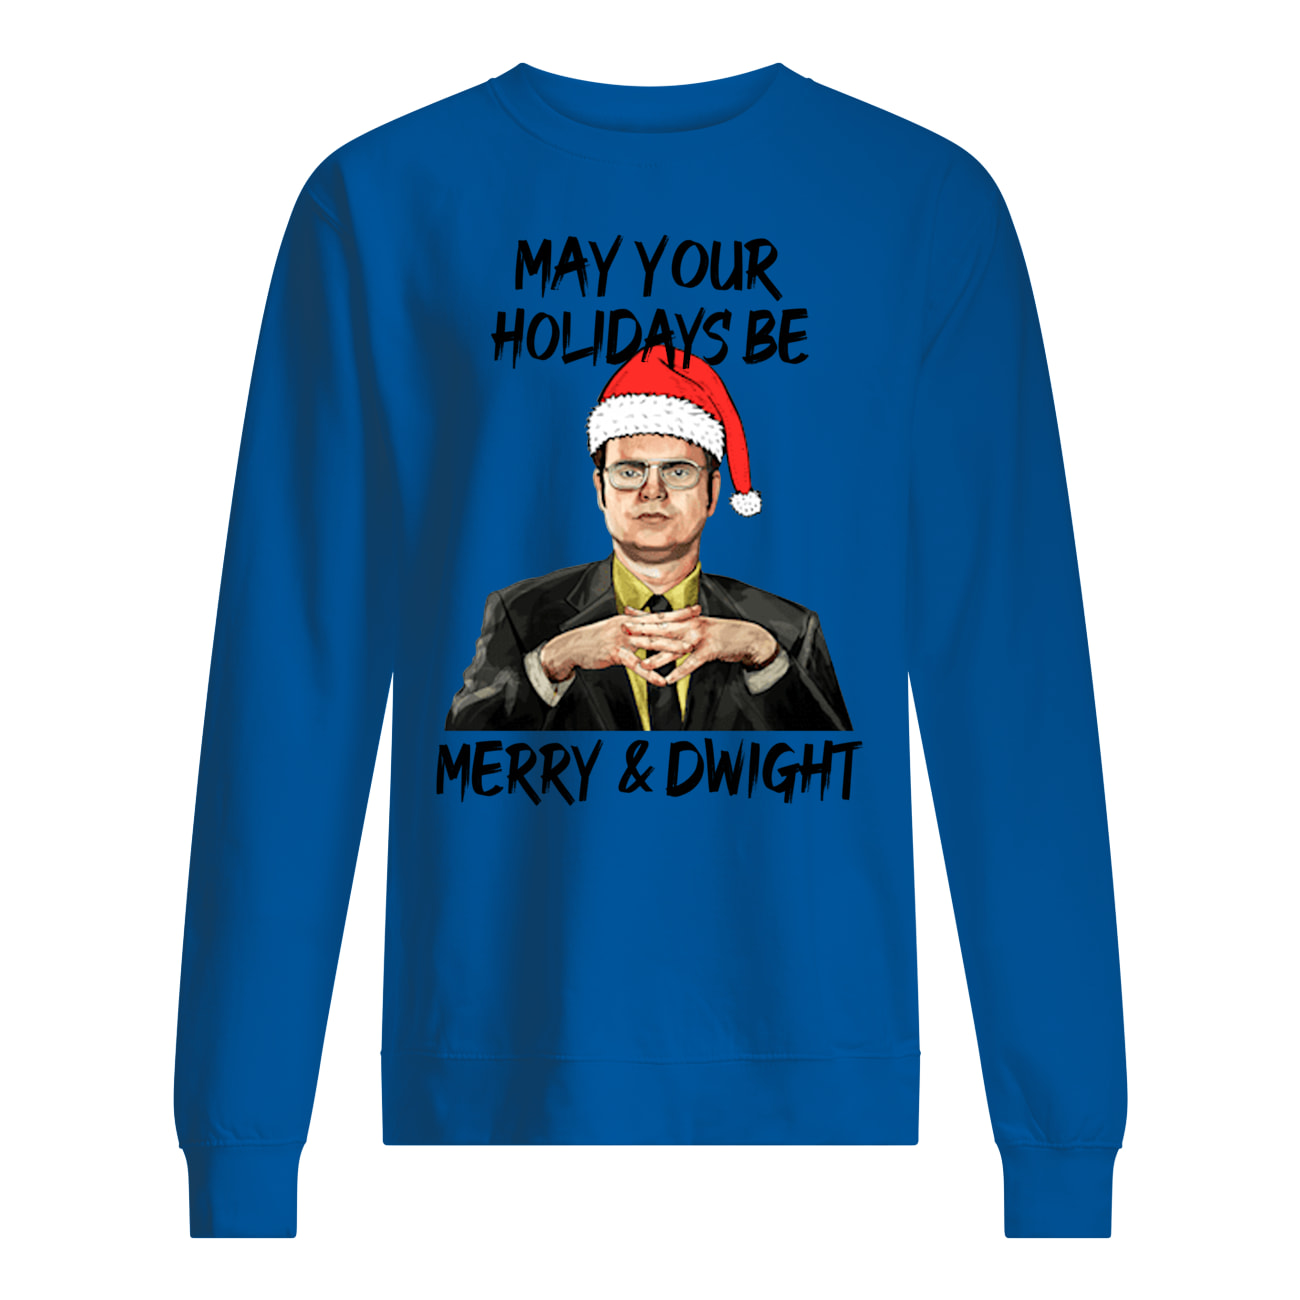 The office may your christmas be merry and dwight christmas sweatshirt